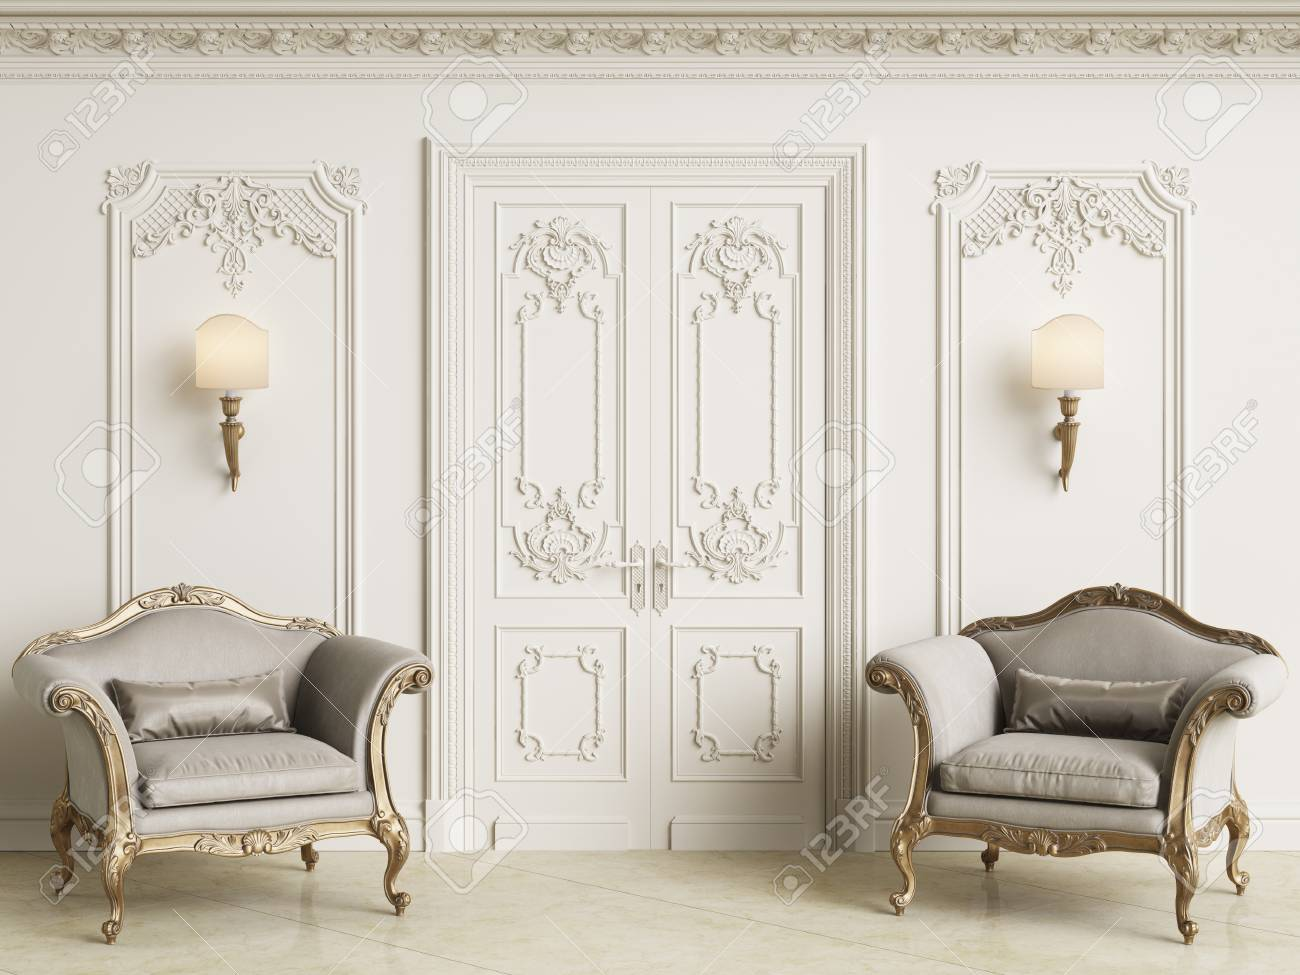 Classic Baroque Armchais In Classic Interior. Walls Wth Moldings And  Decorated Cornice.Marble Floor